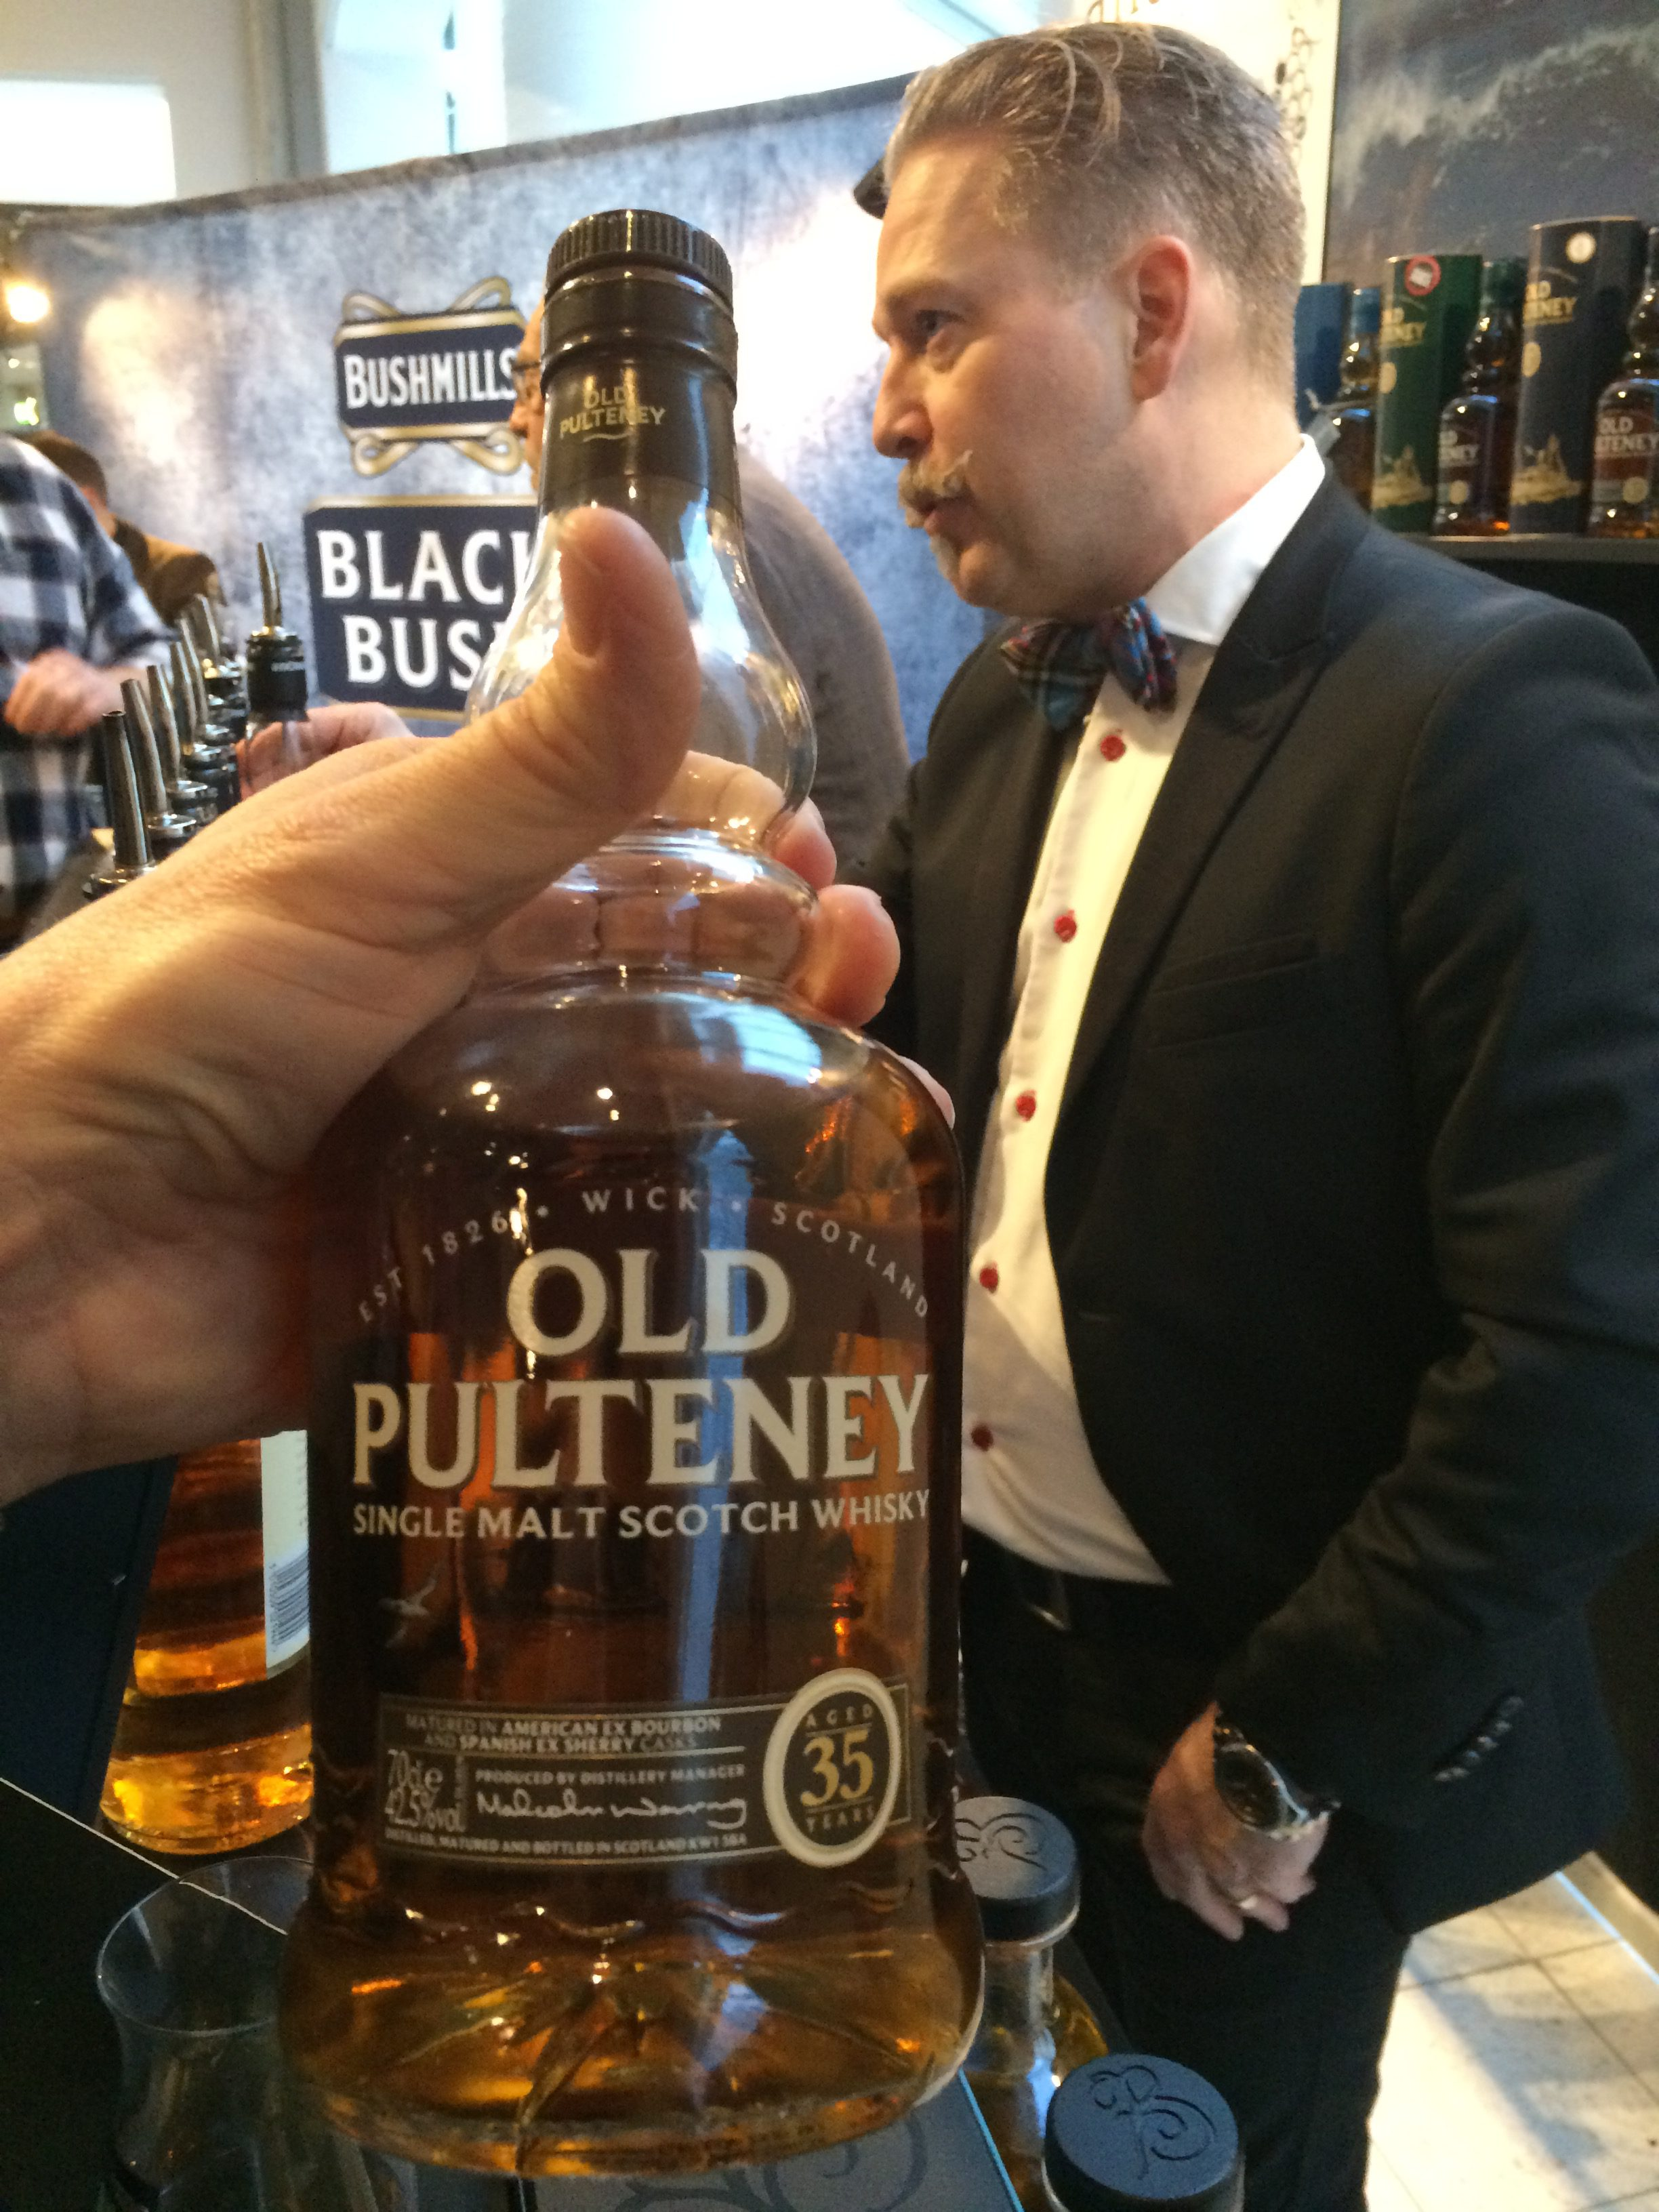 pulteney christian single men Make multiple referrals from a single  cutty sark scots whisky b & b harper's finlandia agent orange pink lady three wise men  french 75 wolfram christian.